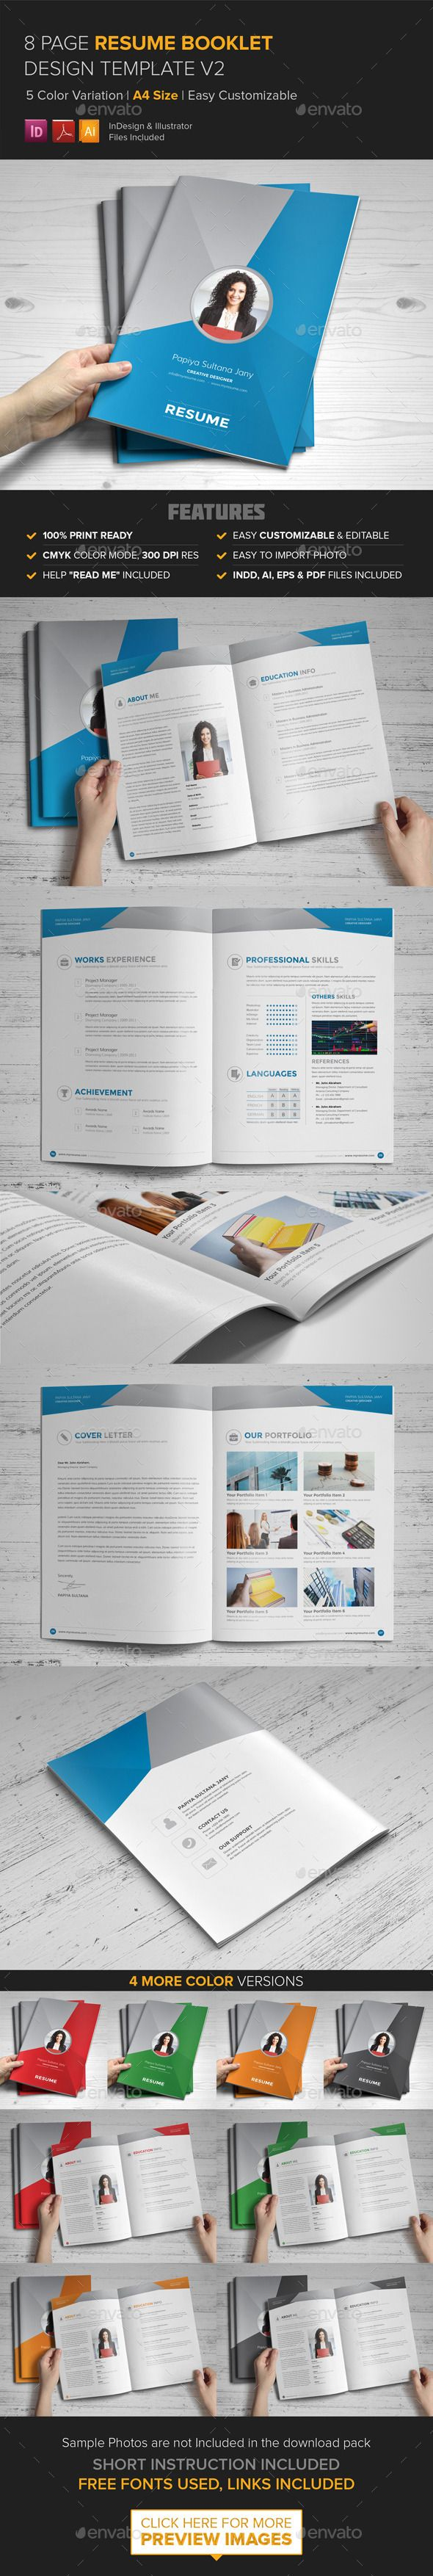 77 best CV images on Pinterest | Resume, Curriculum and Design resume